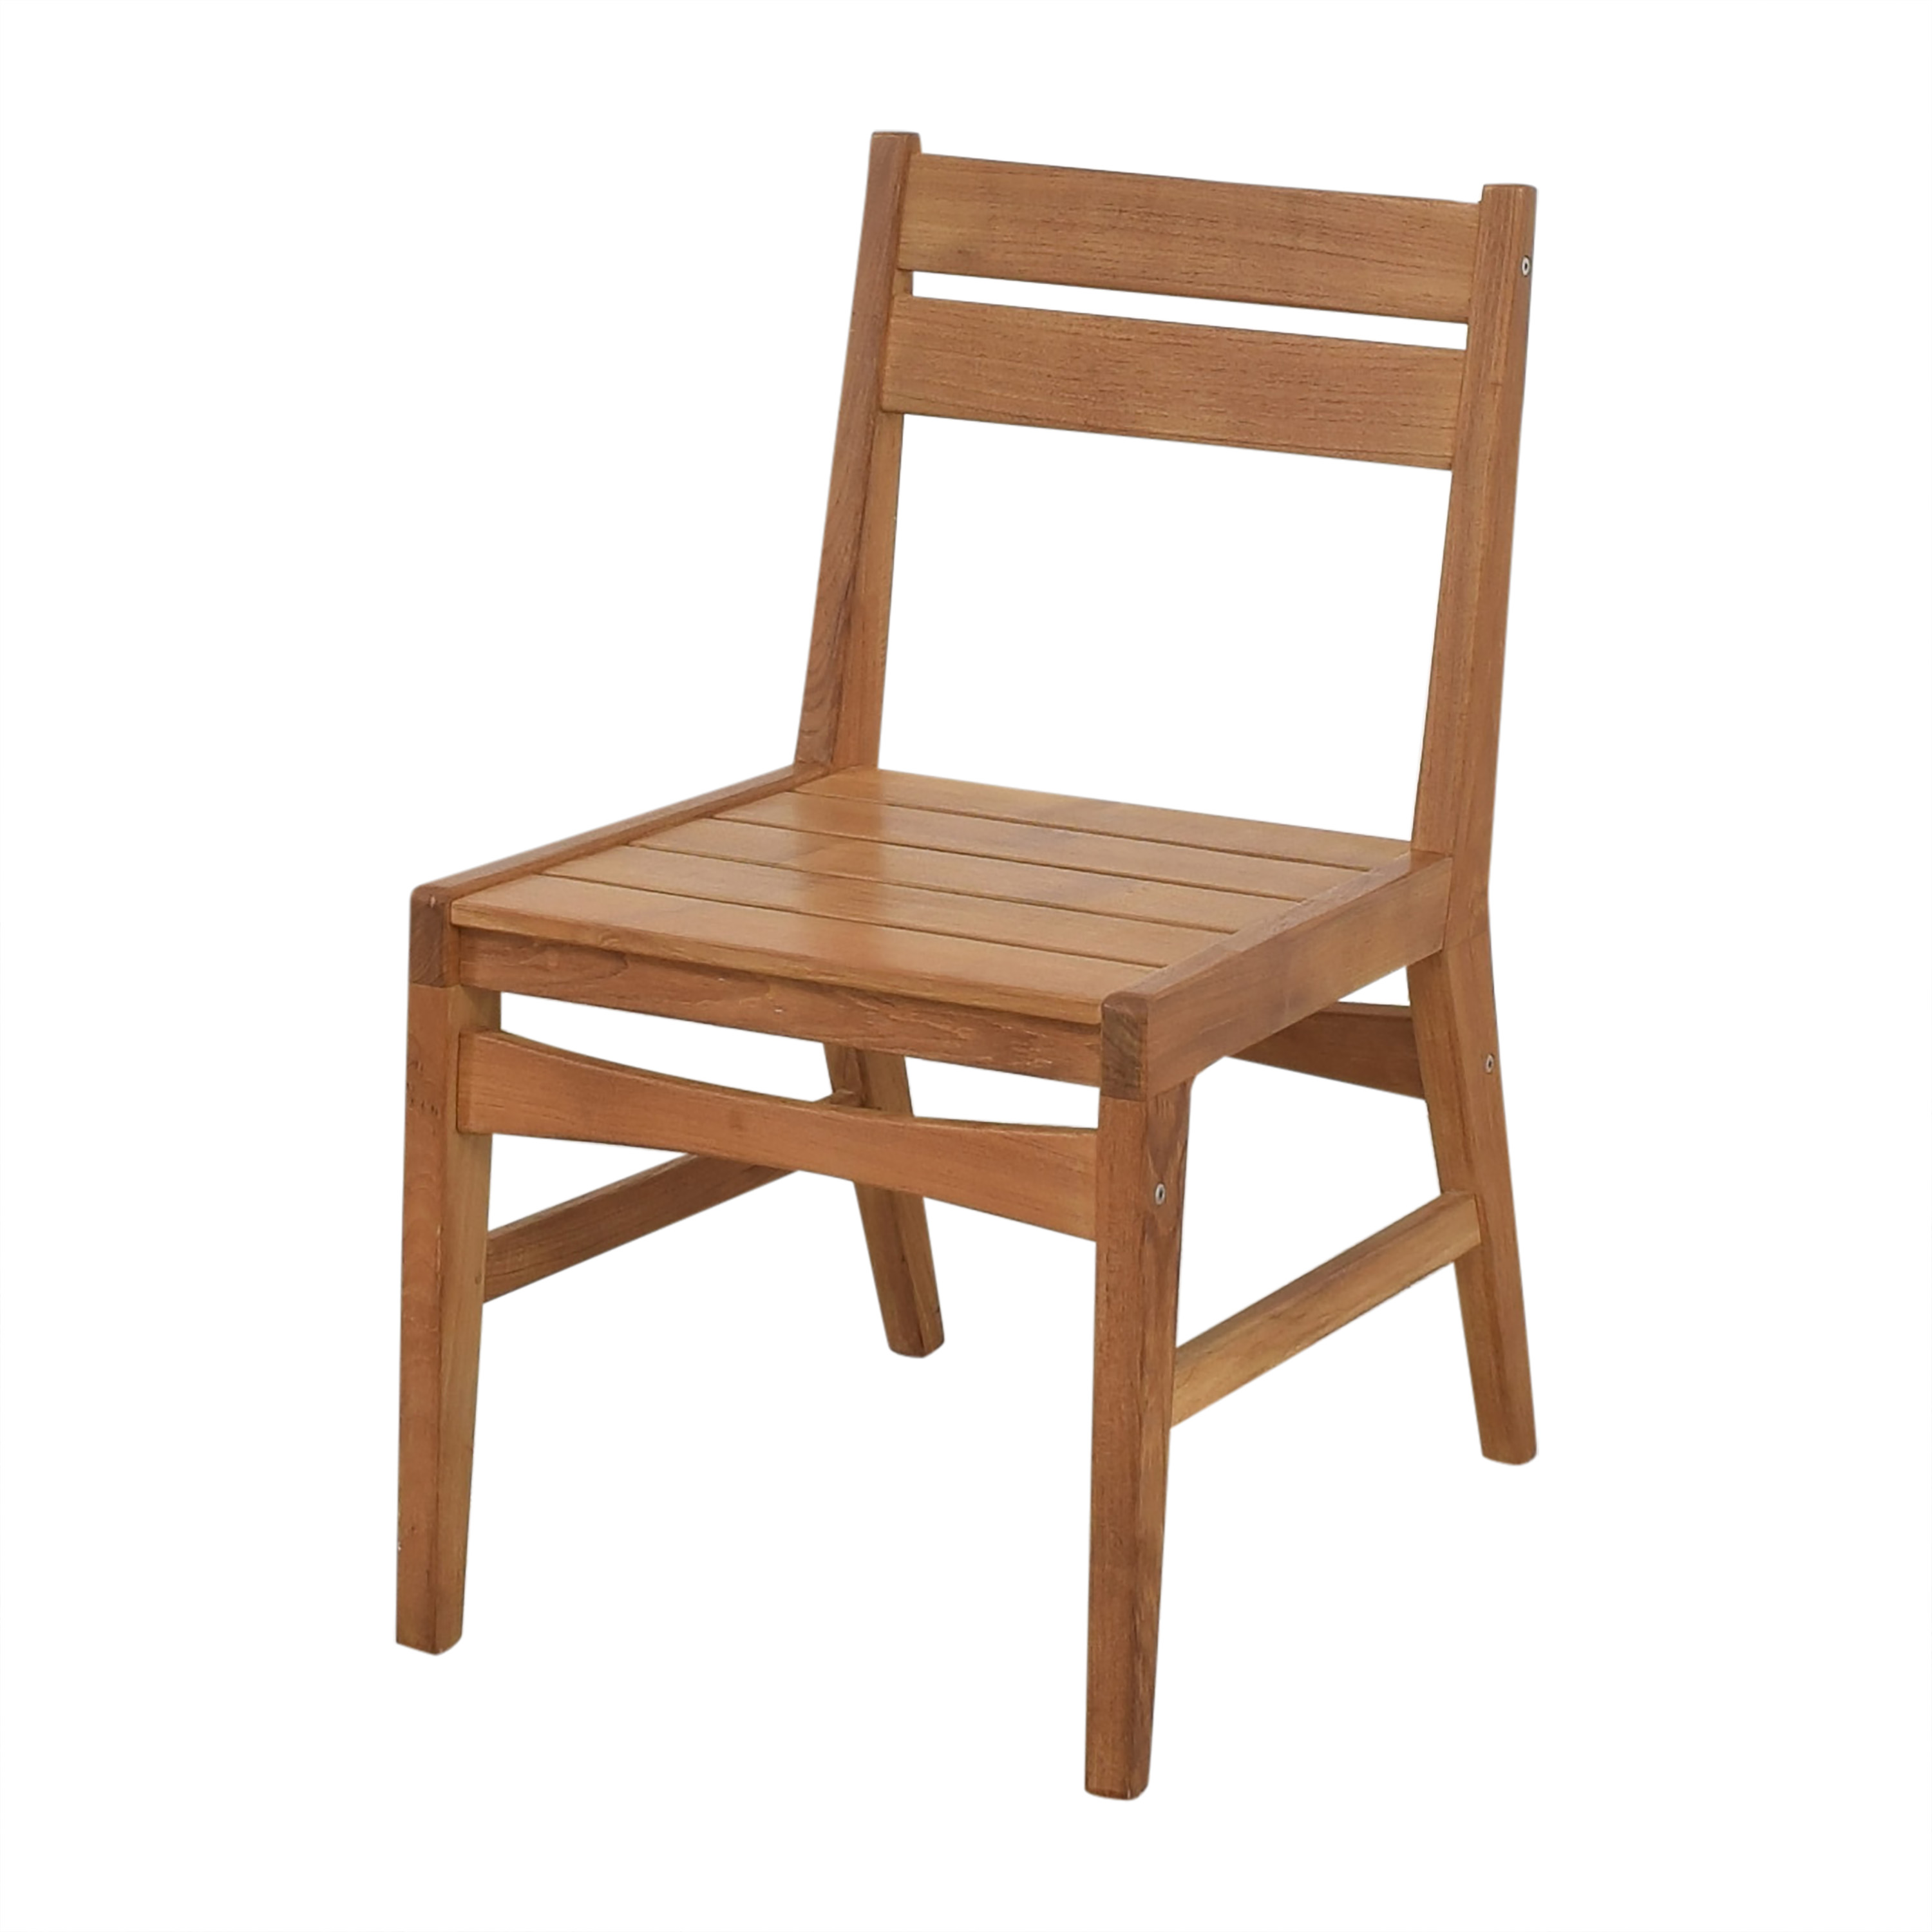 West Elm Mid-Century Outdoor Dining Chairs / Chairs